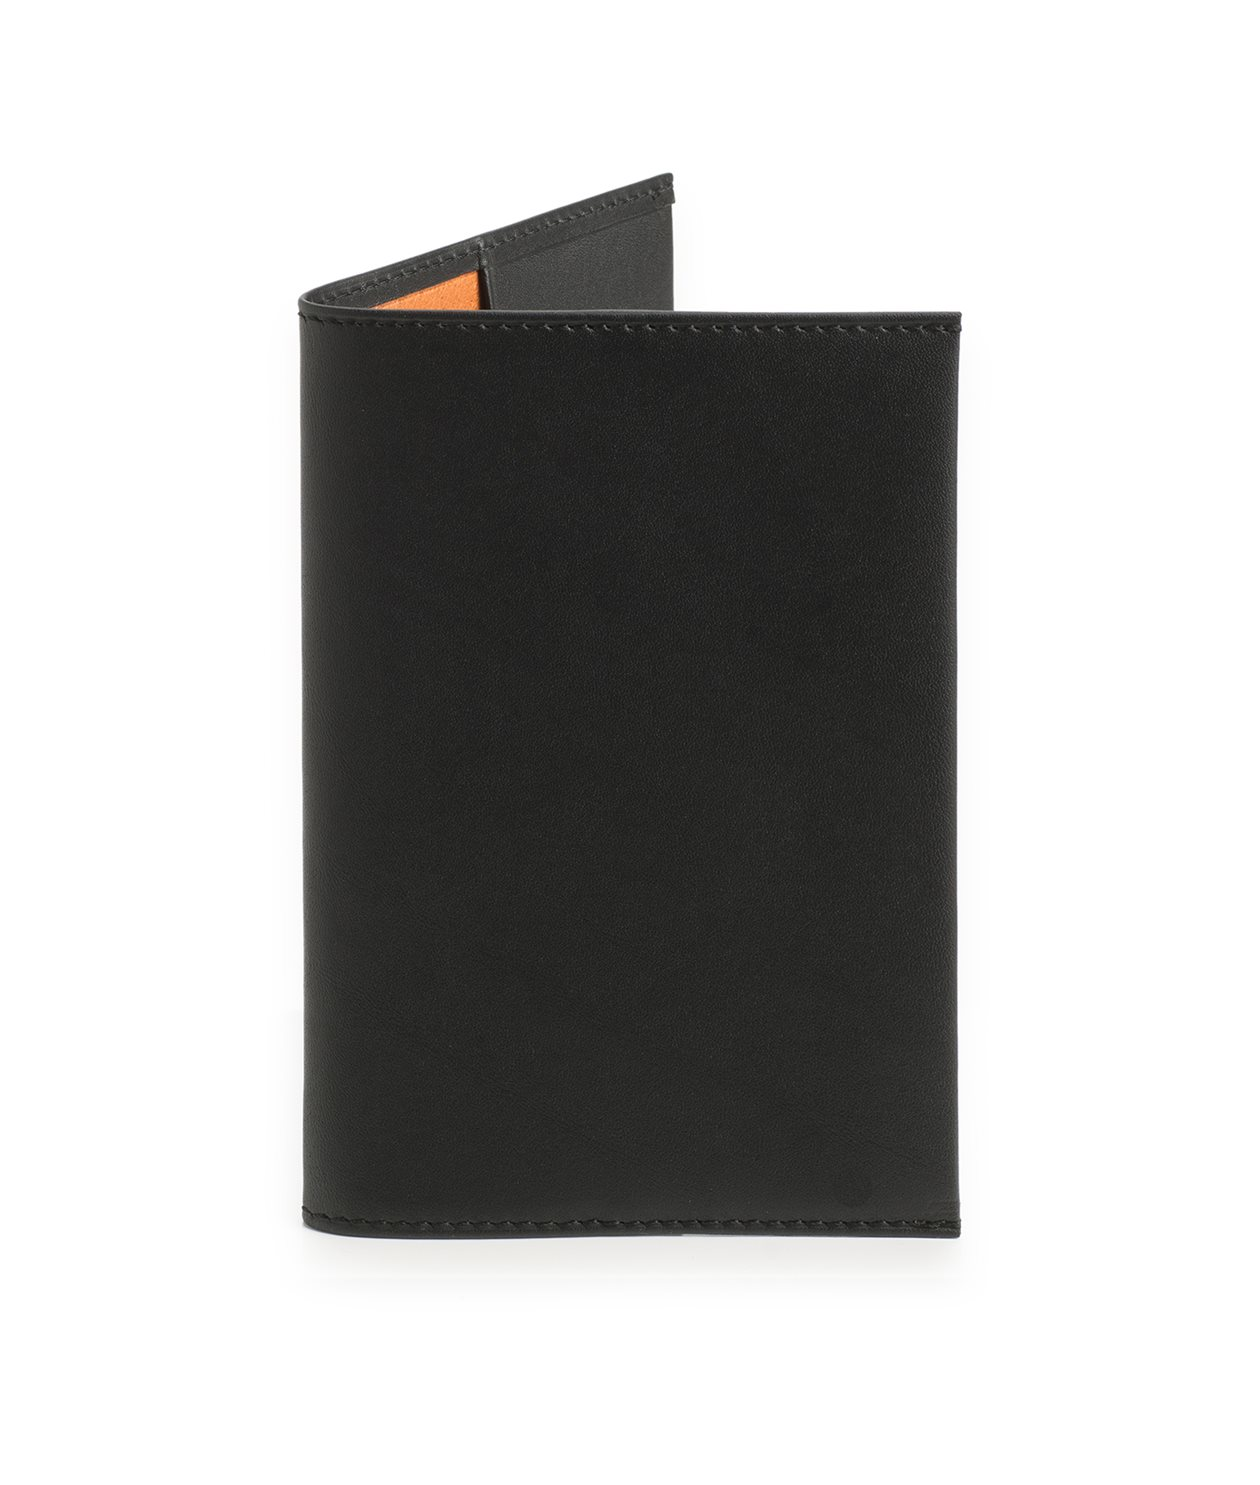 Palmgrens - Passfodral Svart - Genuine handcrafted leather since 1896 ab942006e9aec